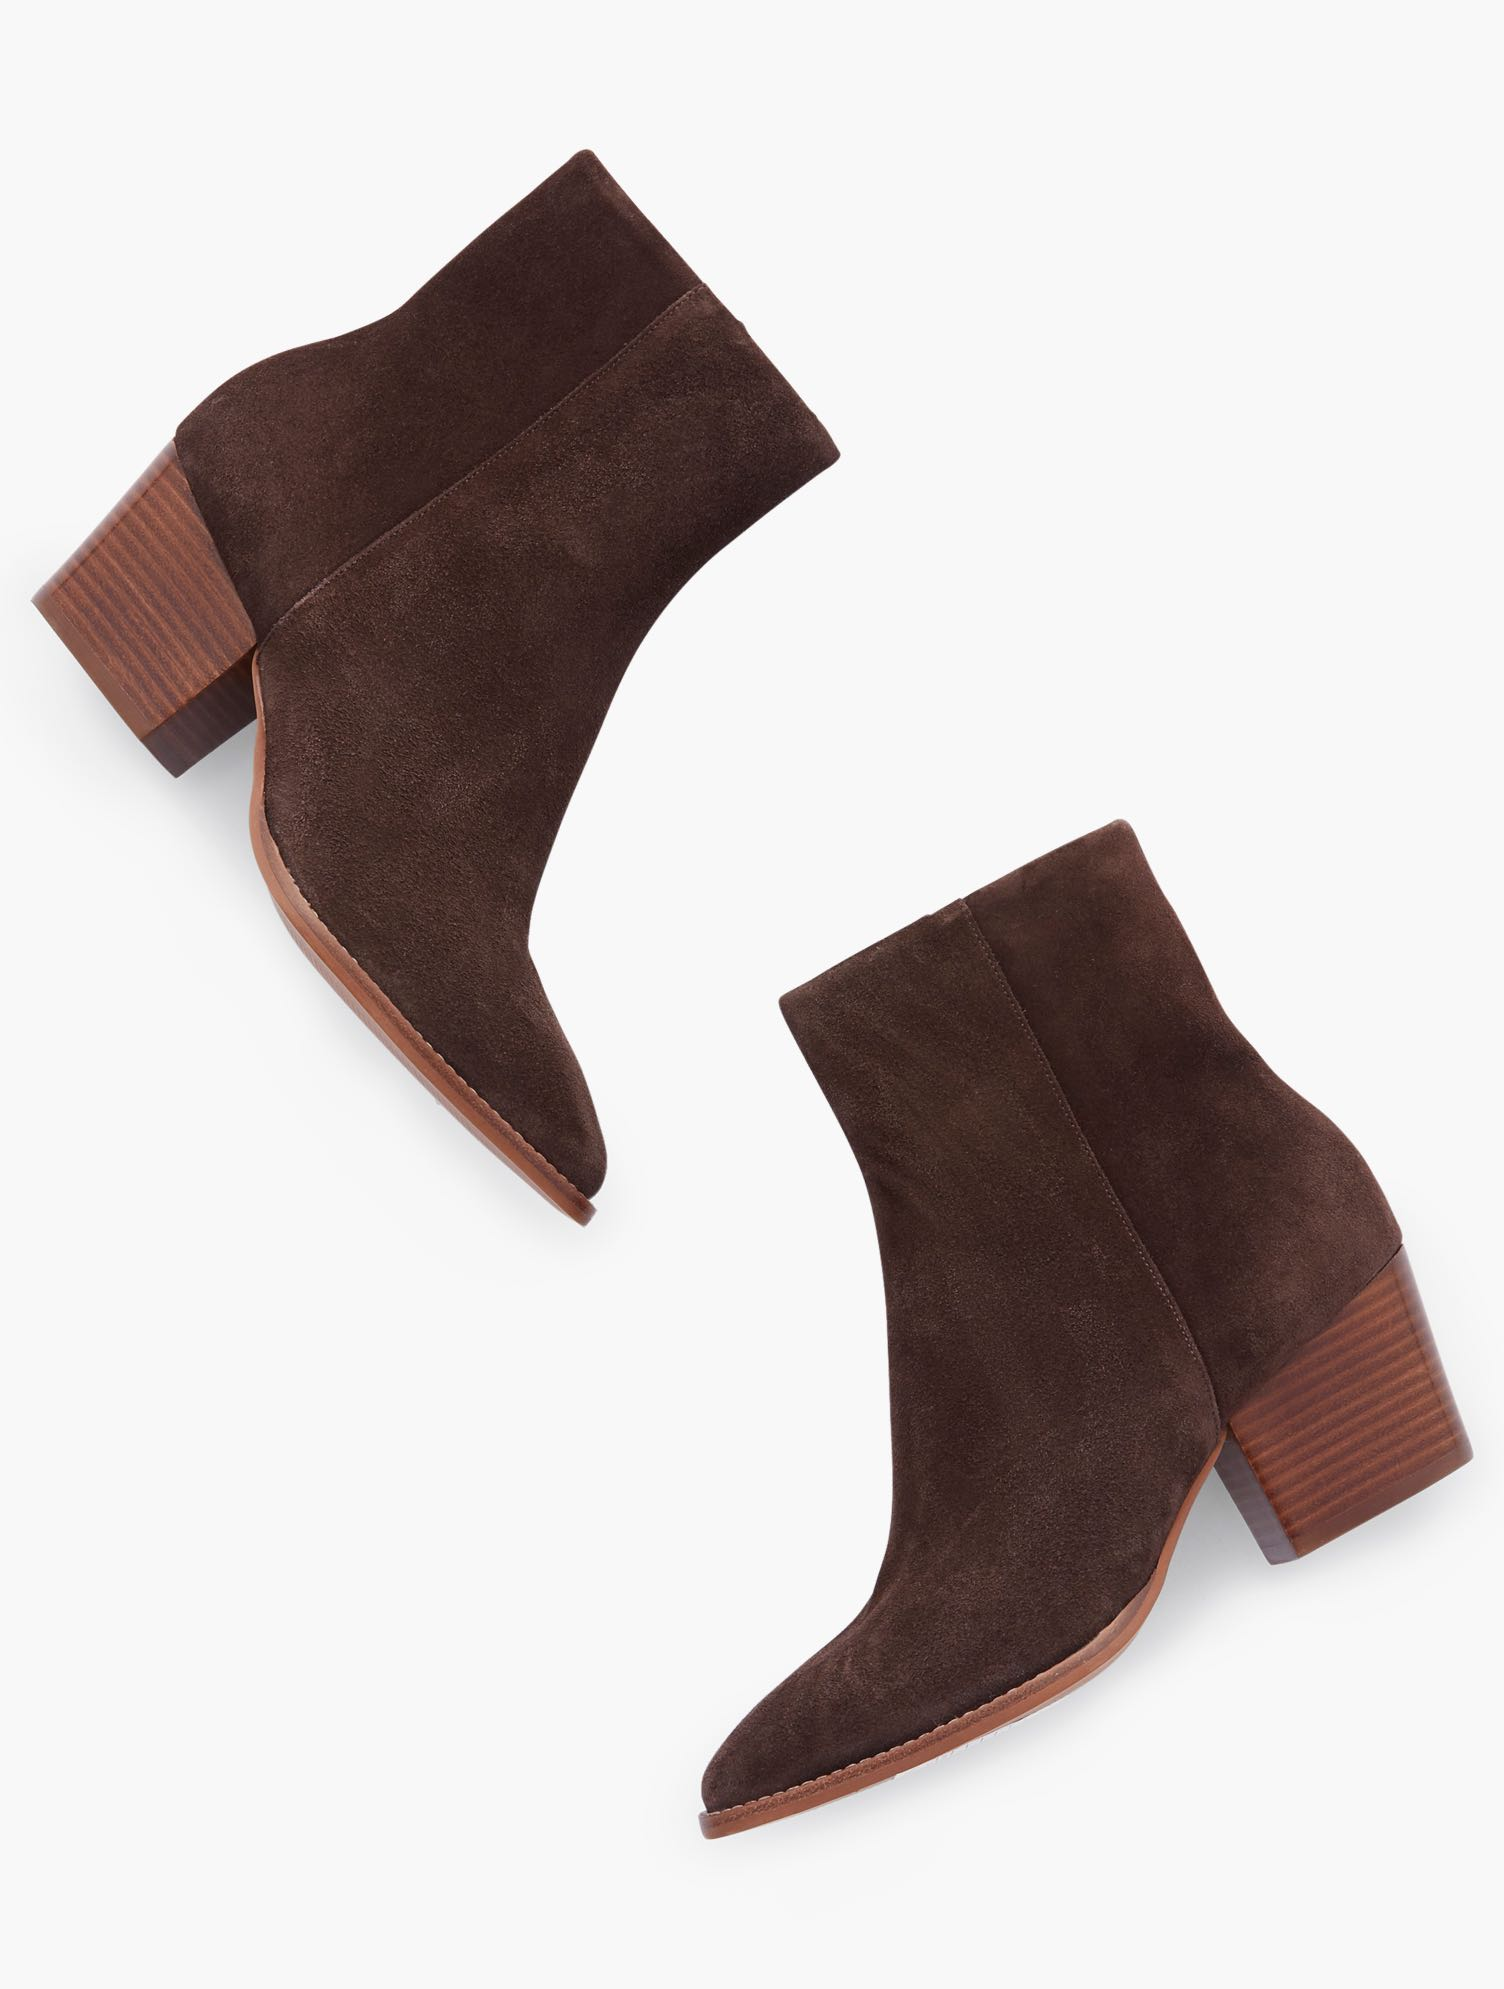 Our Jayla Ankle Boots. Classic and versatile, in sumptuous suede. Features Gift Box/Gift Wrap is not available for this item 3MM Memory foam footbed 2 1/4 inches heel Western Boot Almond Toe Closure: Side Zipper Imported Material: 100% Leather Jayla Suede Ankle Boots - Chocolate - 11M Talbots